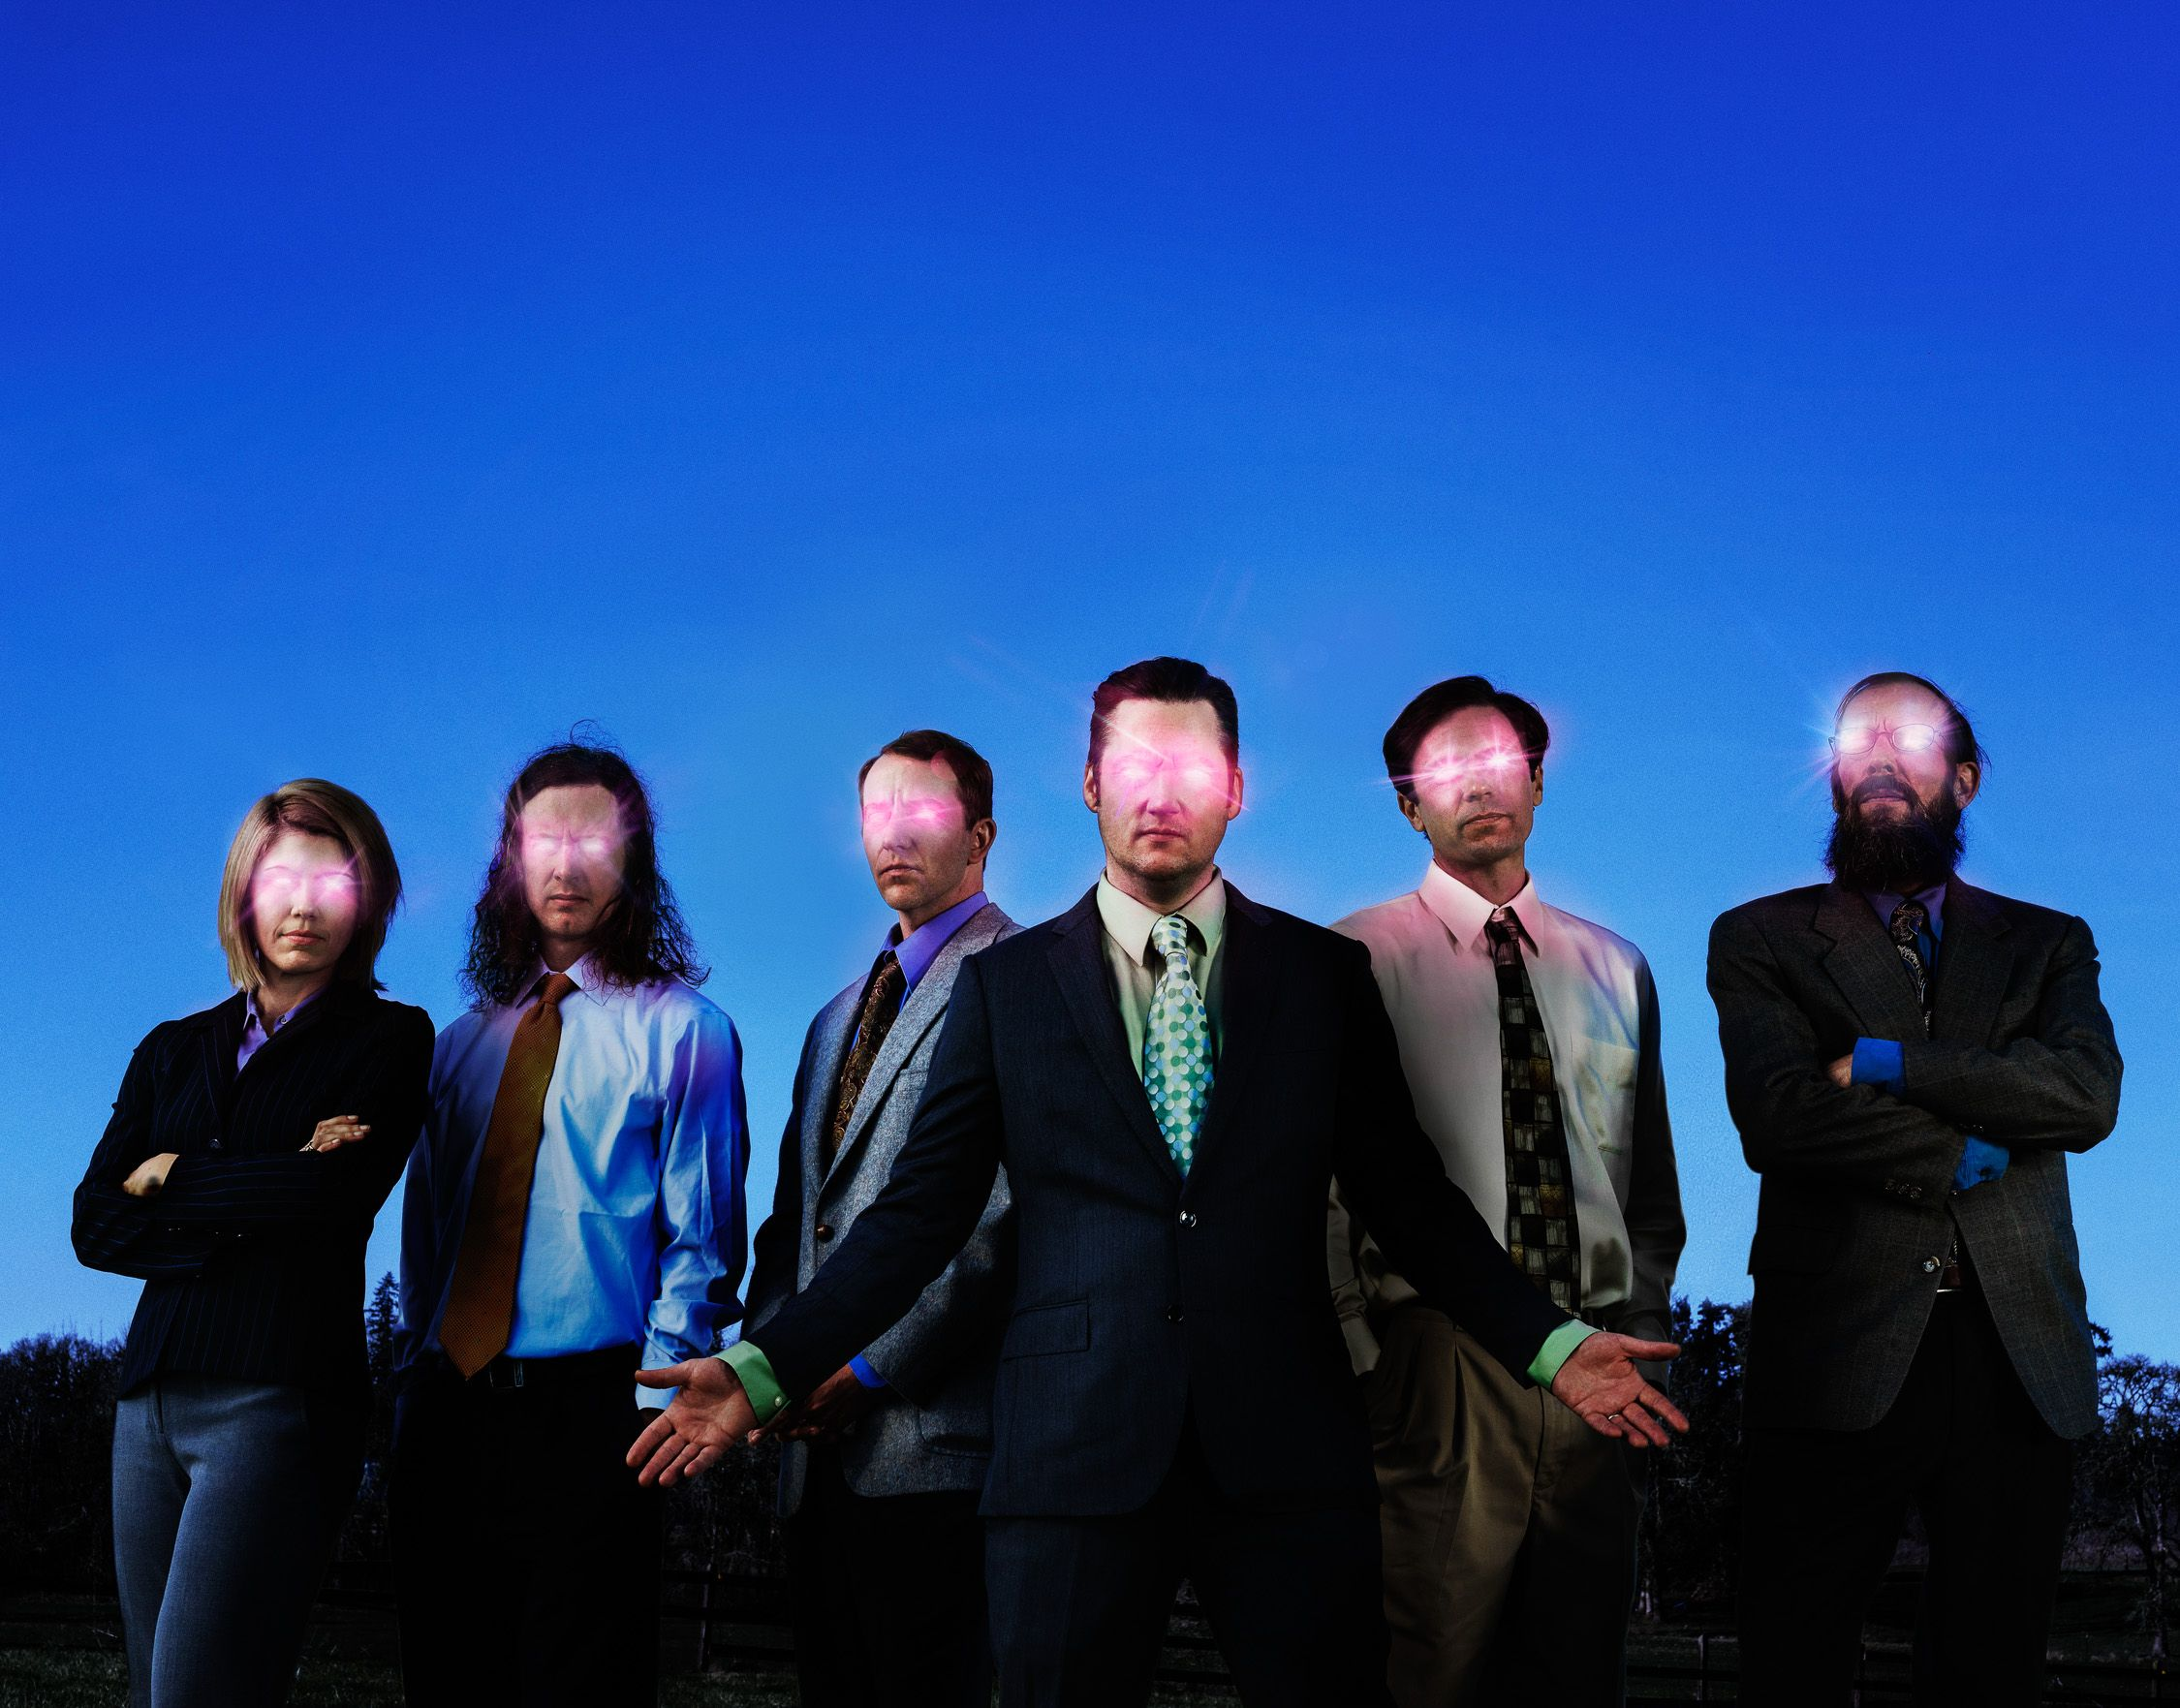 modestmouseFORCMS